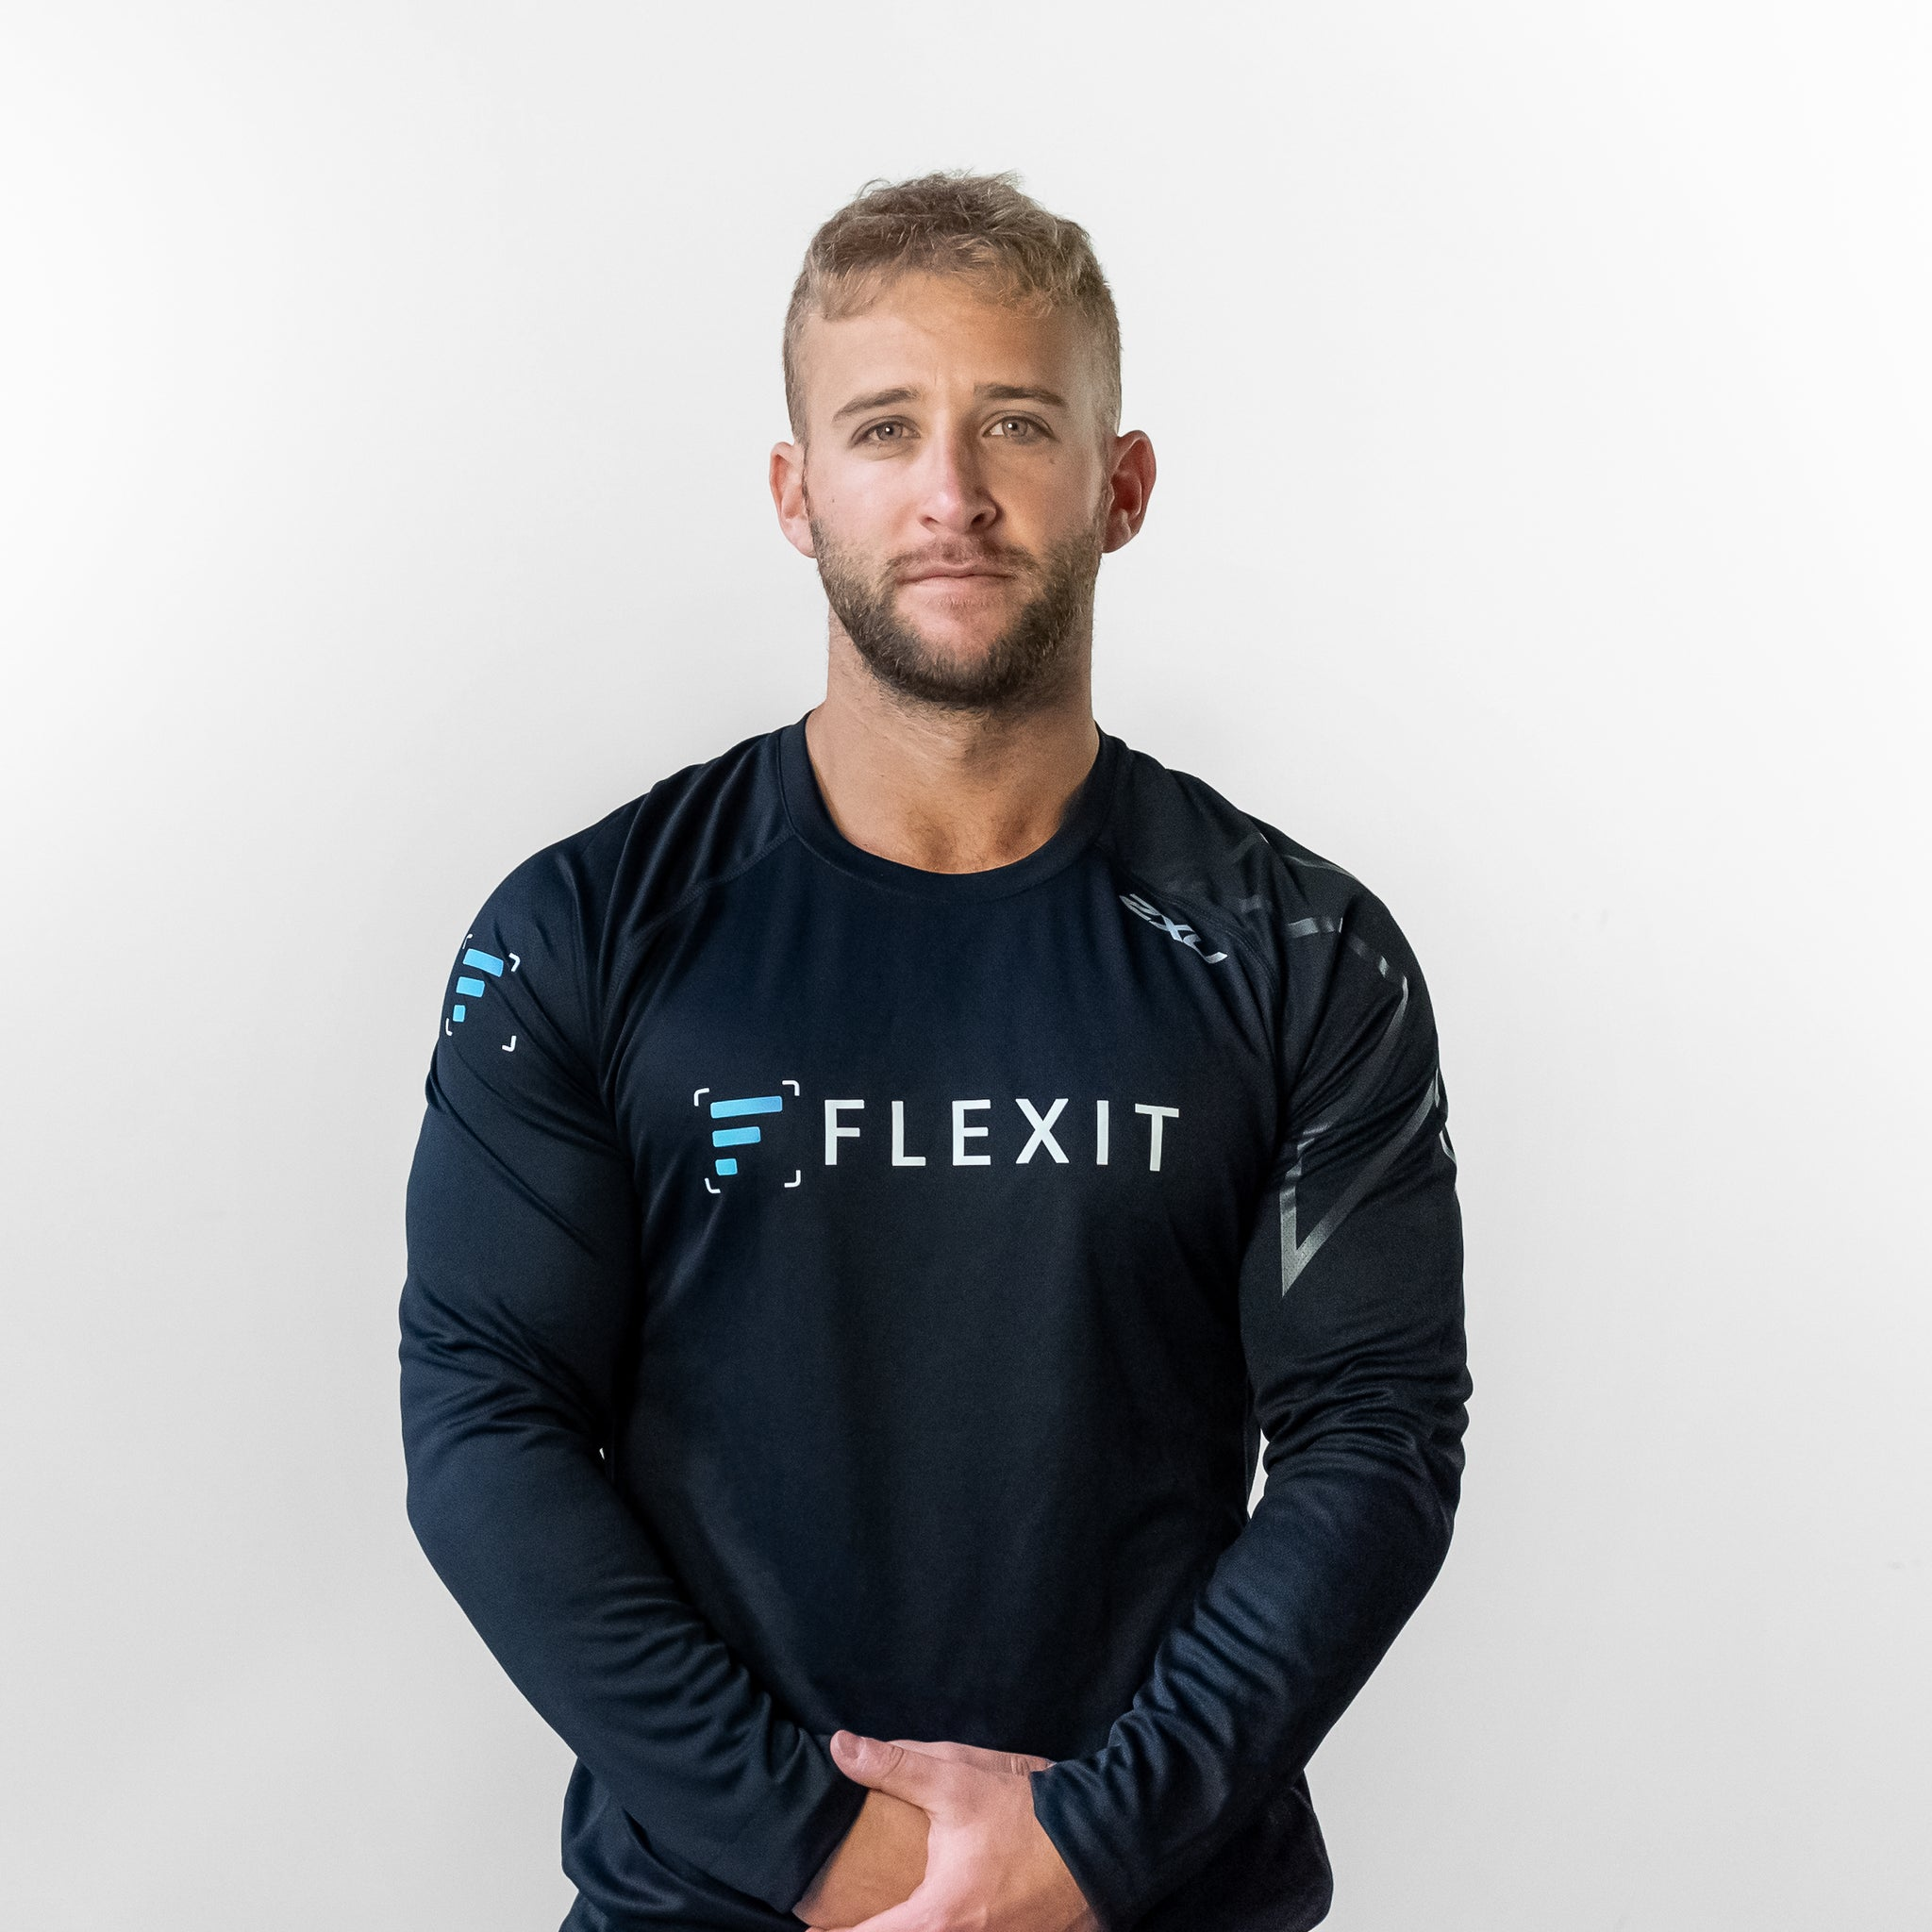 Man wearing FlexIt Dry Fit black long sleeve shirt.